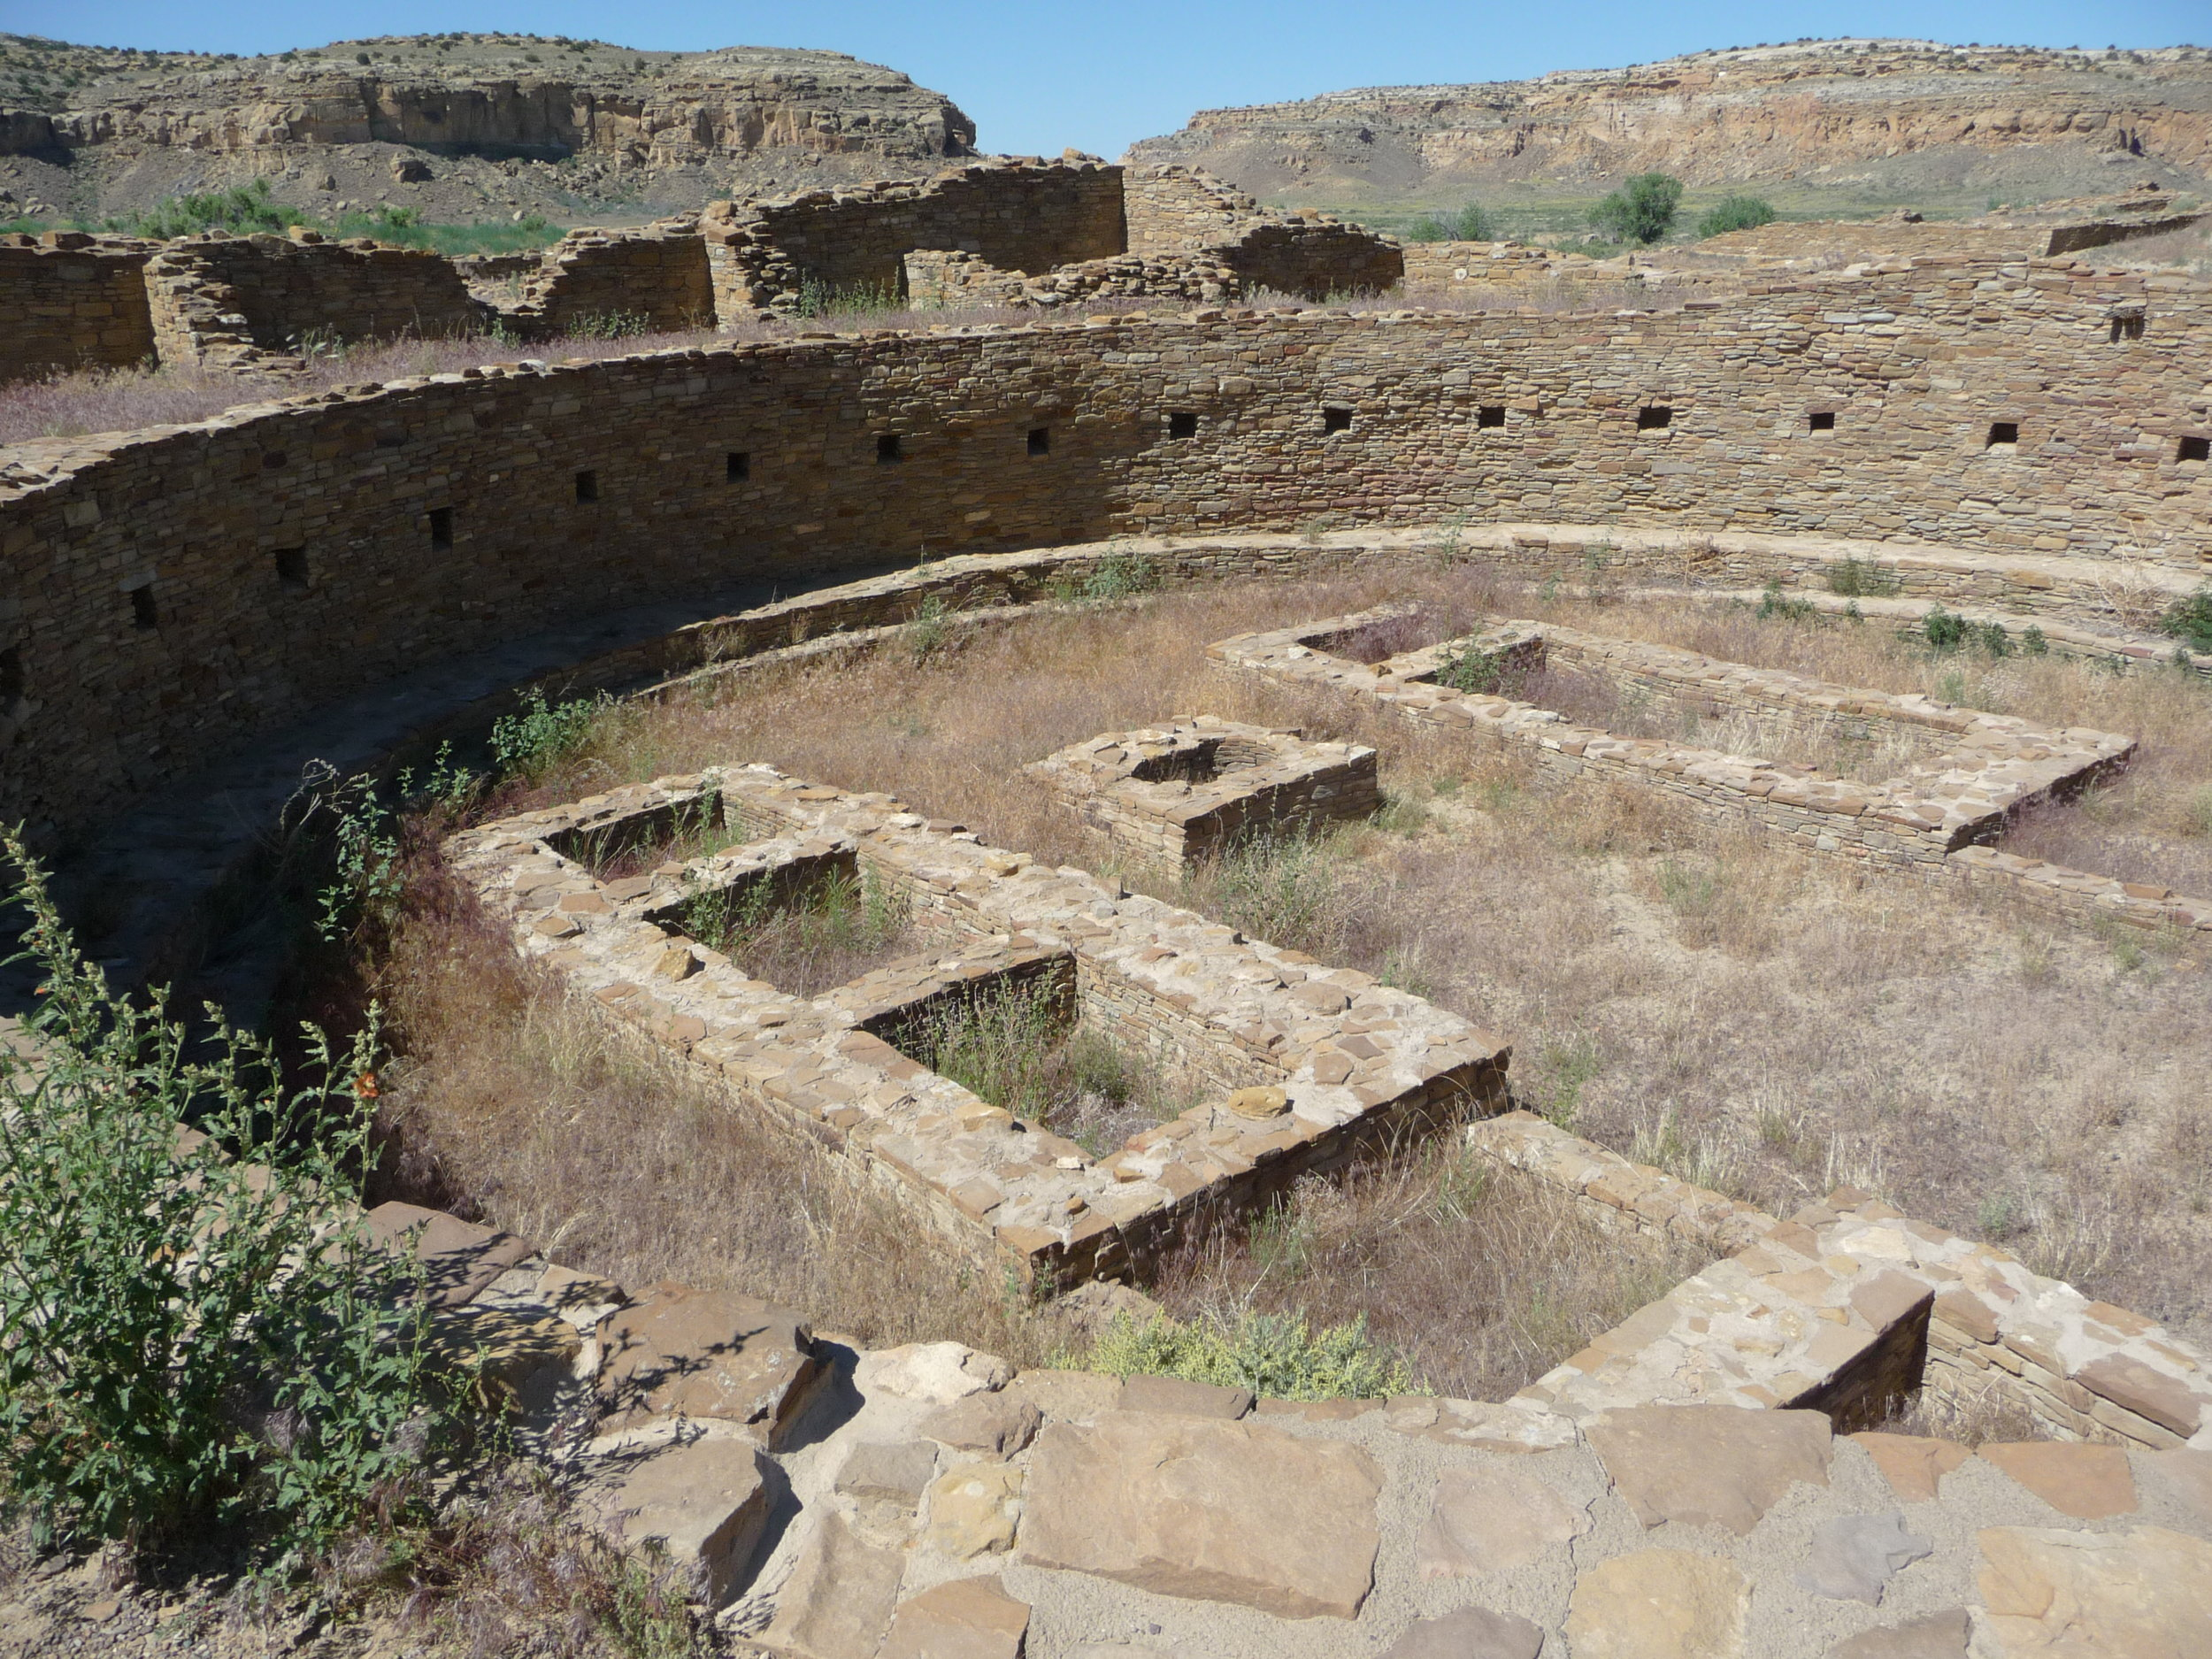 A great kiva on the floor of Pueblo Bonito, Chaco Canyon. Photo credit: Alissa Simon